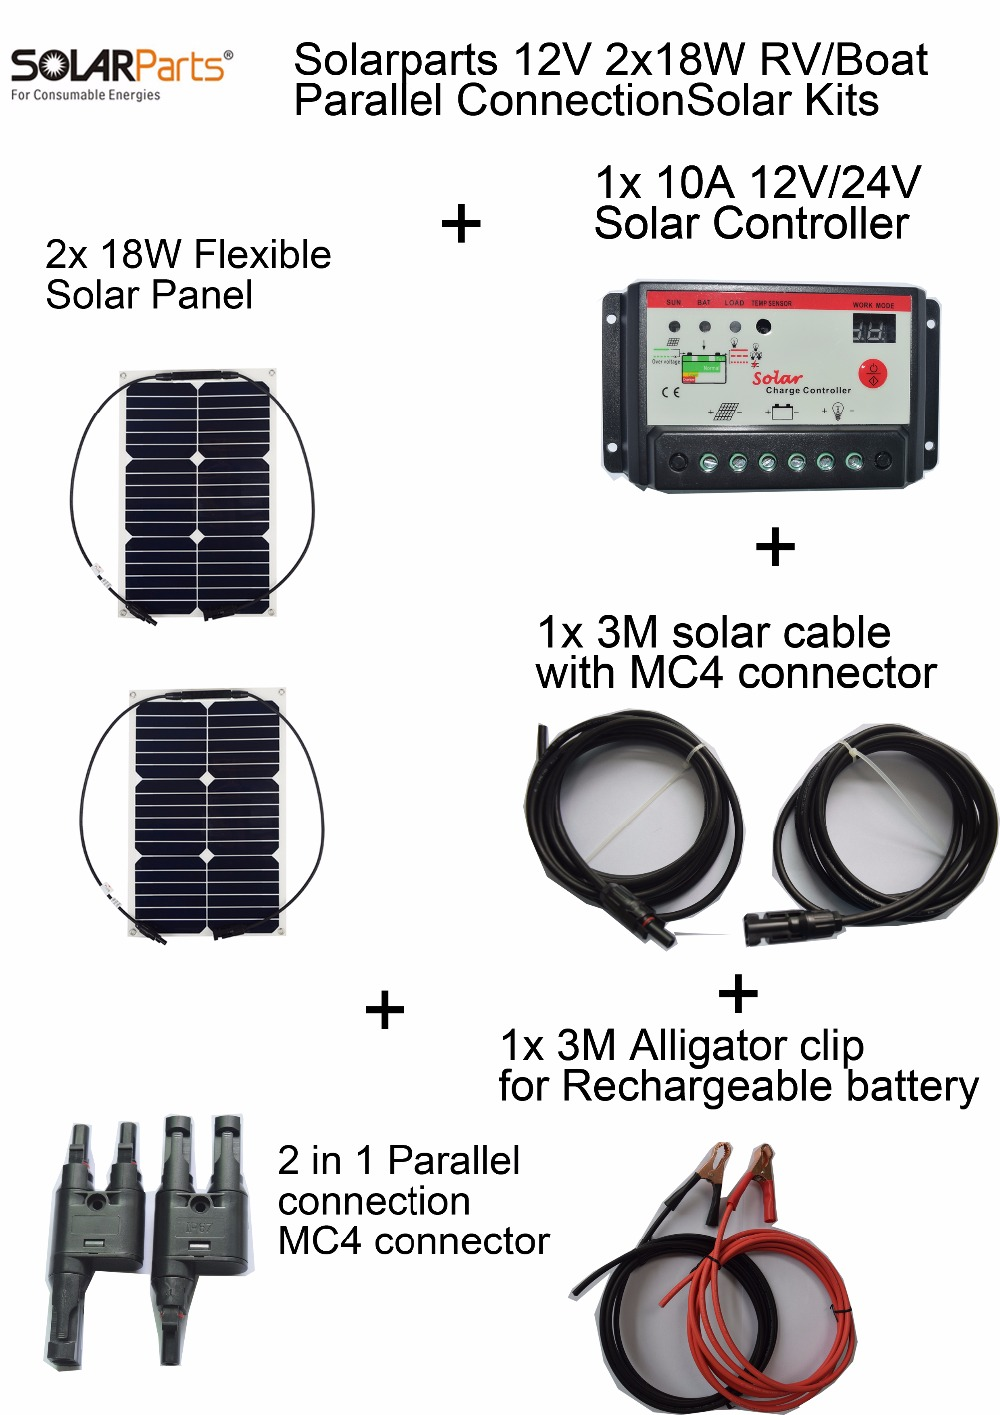 BOGUANG 12V 2x18W DIY RV Boat Kits Solar System 18W flexible solar panel 1x 10A solar controller 1 set 3M MC4 cable 1 set clip sp 36 120w 12v semi flexible monocrystalline solar panel waterproof high conversion efficiency for rv boat car 1 5m cable